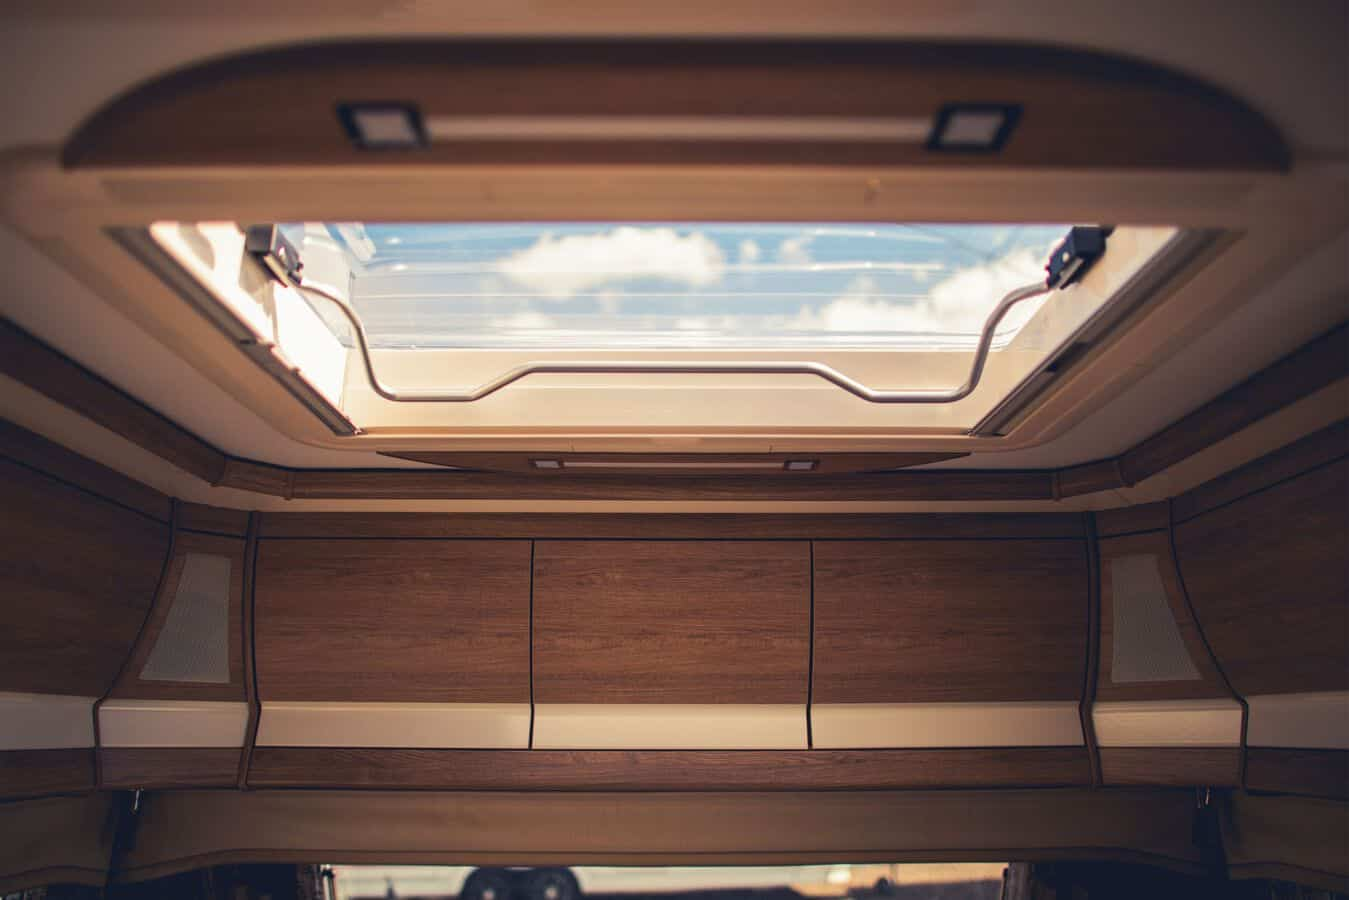 How To Replace A Cracked Rv Roof Vent In Under 20 Minutes